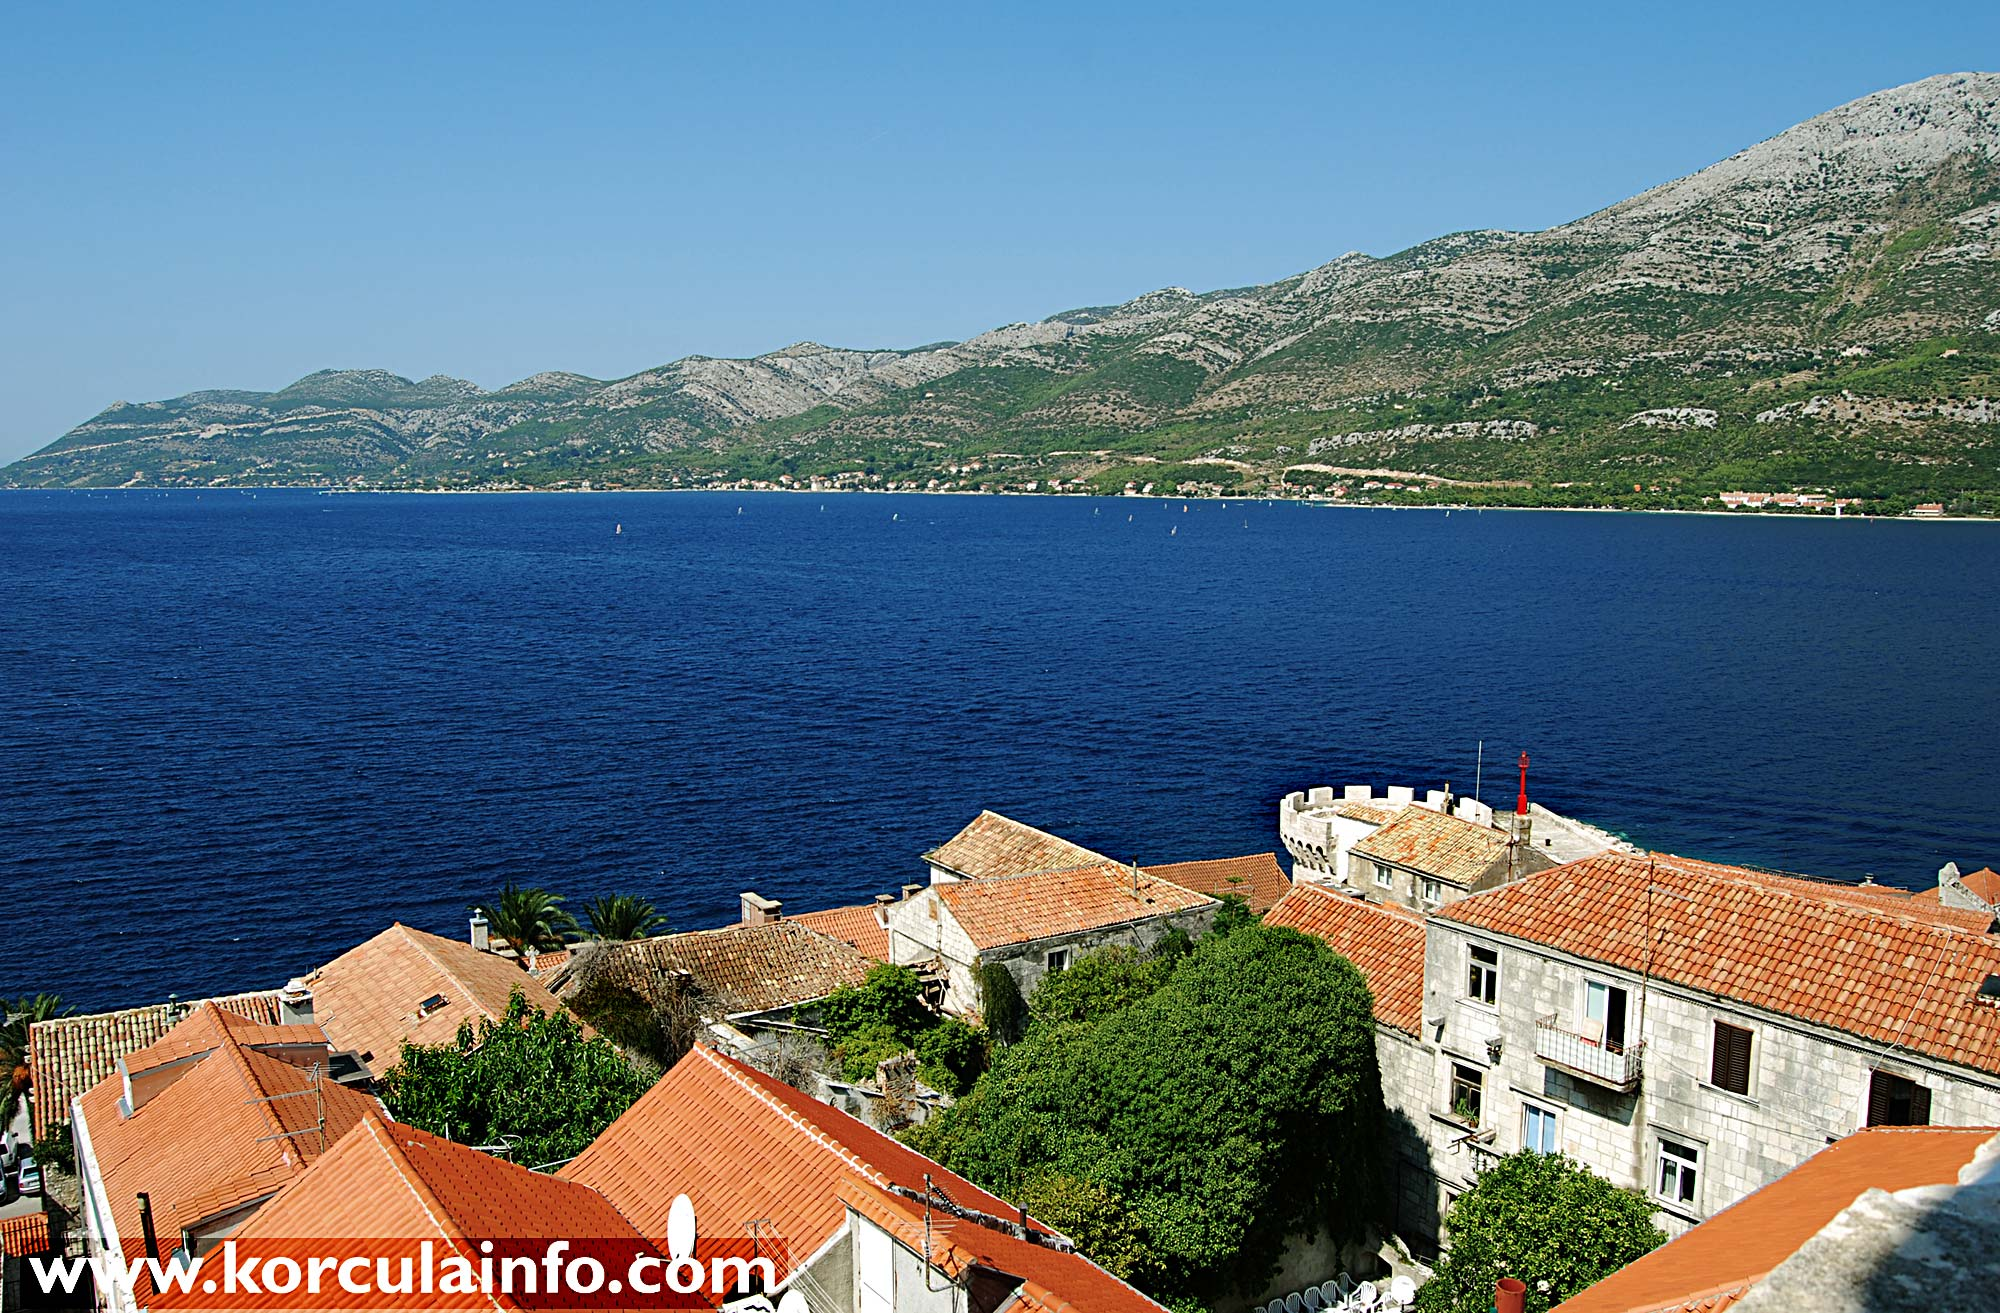 Views over Peljesac Channel from the Tower of St Mark's Cathedral